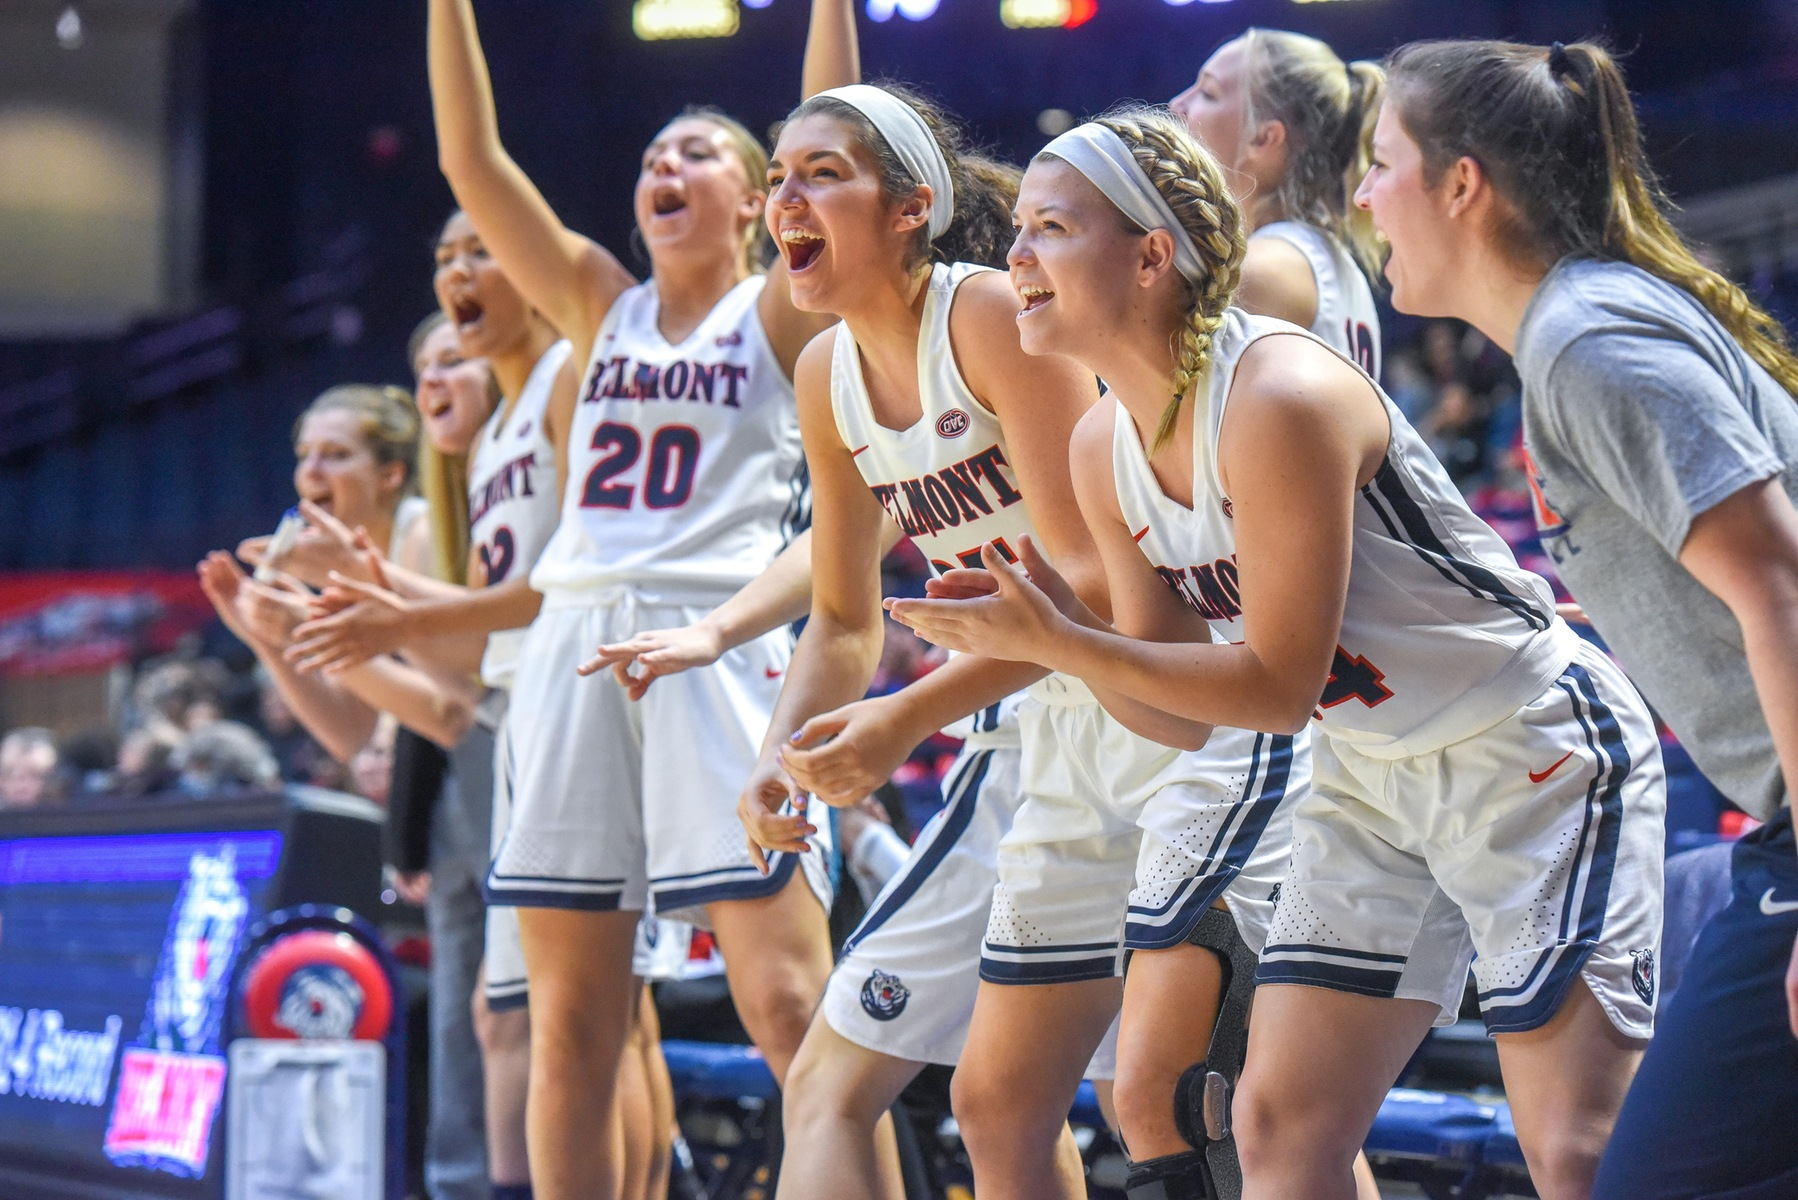 Hannah Harmeyer, second from right, cheers from the bench along side her Belmont women's basketball teammates against Arkansas State earlier this season.